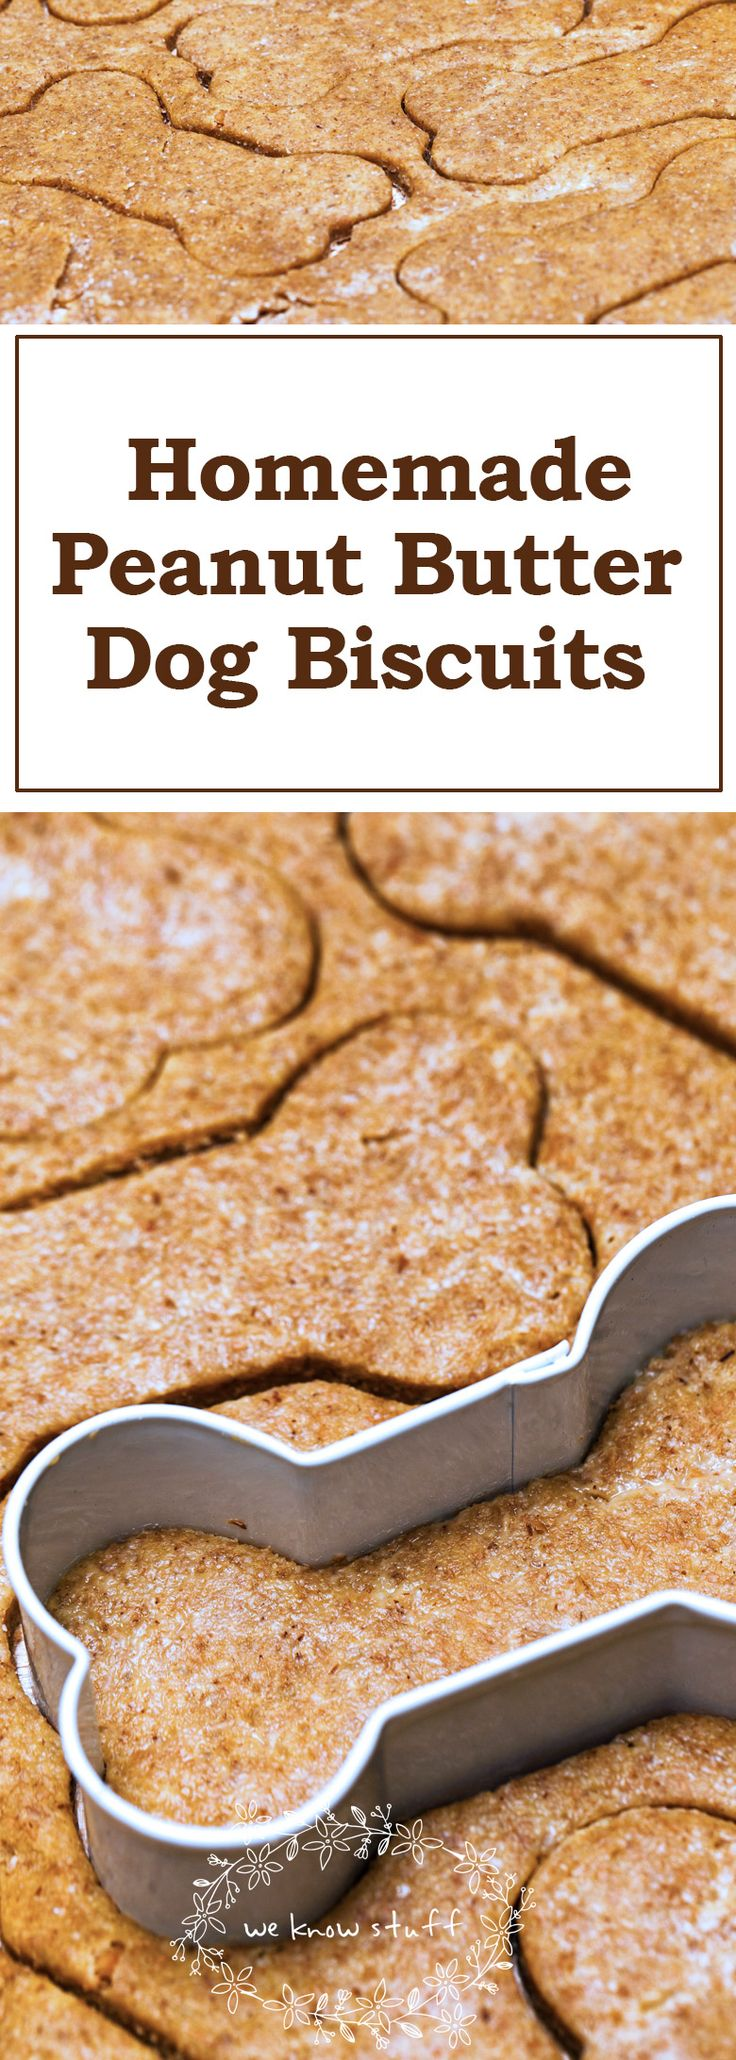 Our dogs go bonkers for all of our homemade dog biscuit recipes. This homemade peanut butter dog biscuit recipe is made with all natural, dog-friendly ingredients like peanut butter and coconut oil from Carrington Farms.